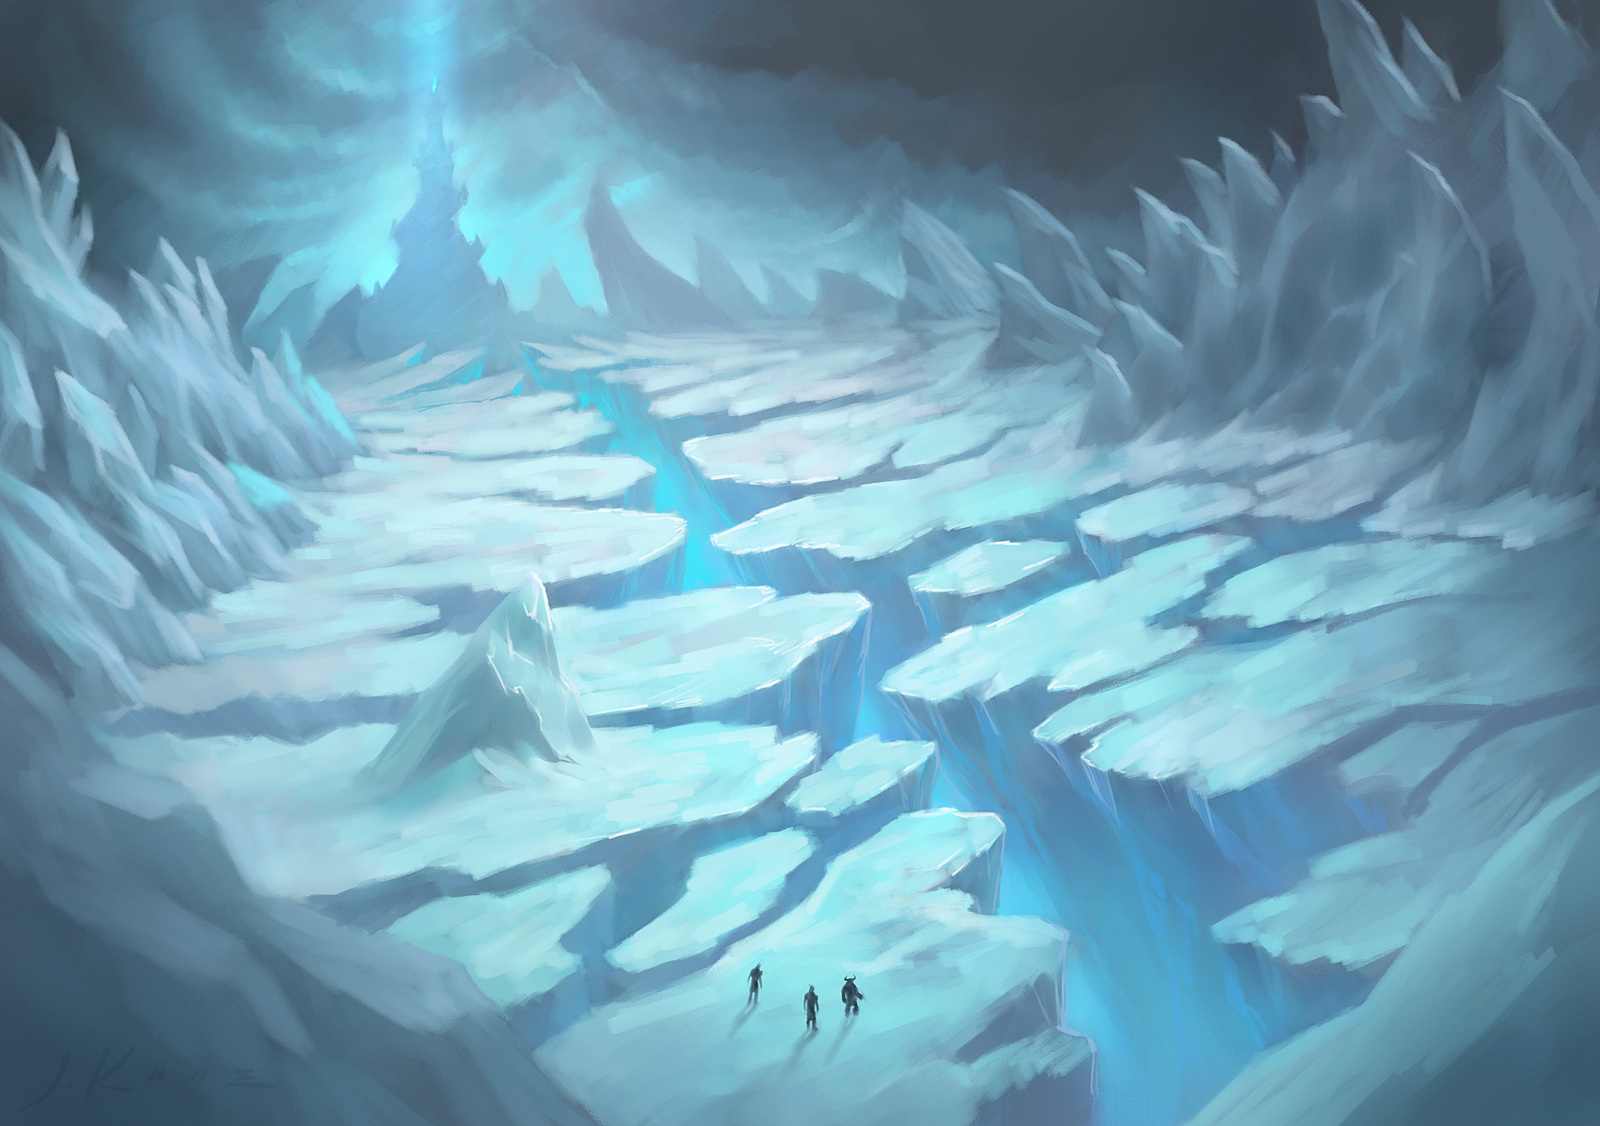 Fall Of The Lich King Wallpaper Ptr Release Build Class Balance And Dragonwrath Fan Art